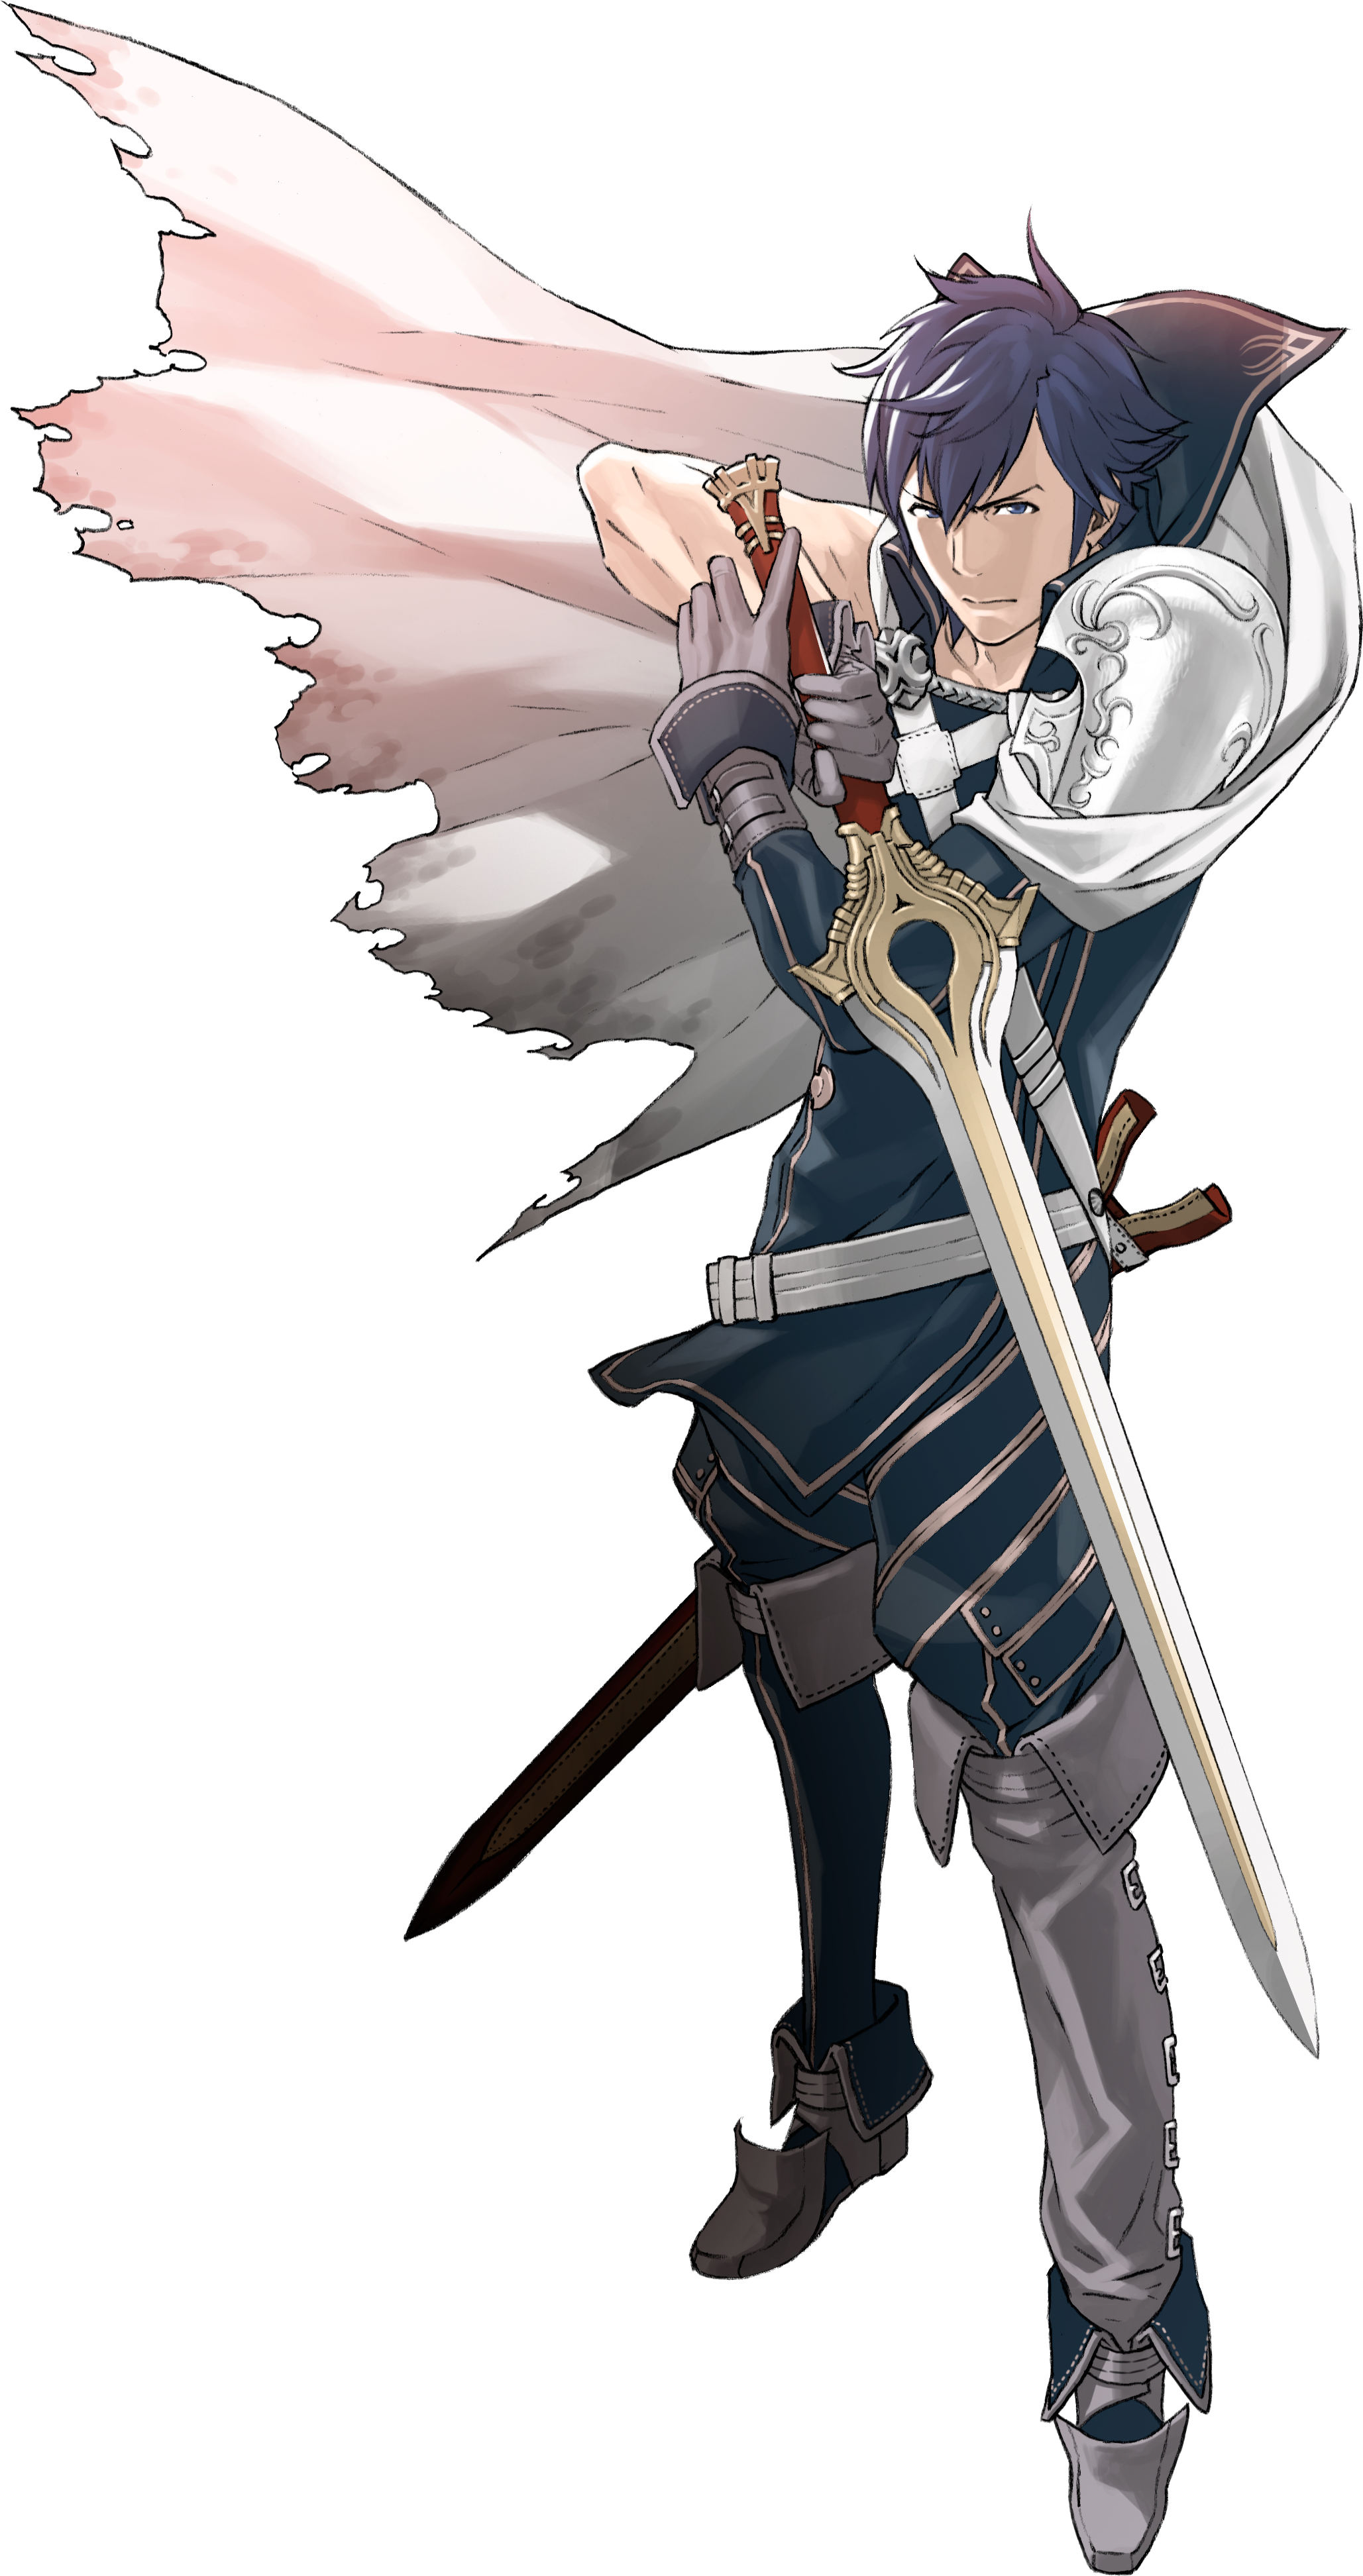 FeaturedArticle/Chrom